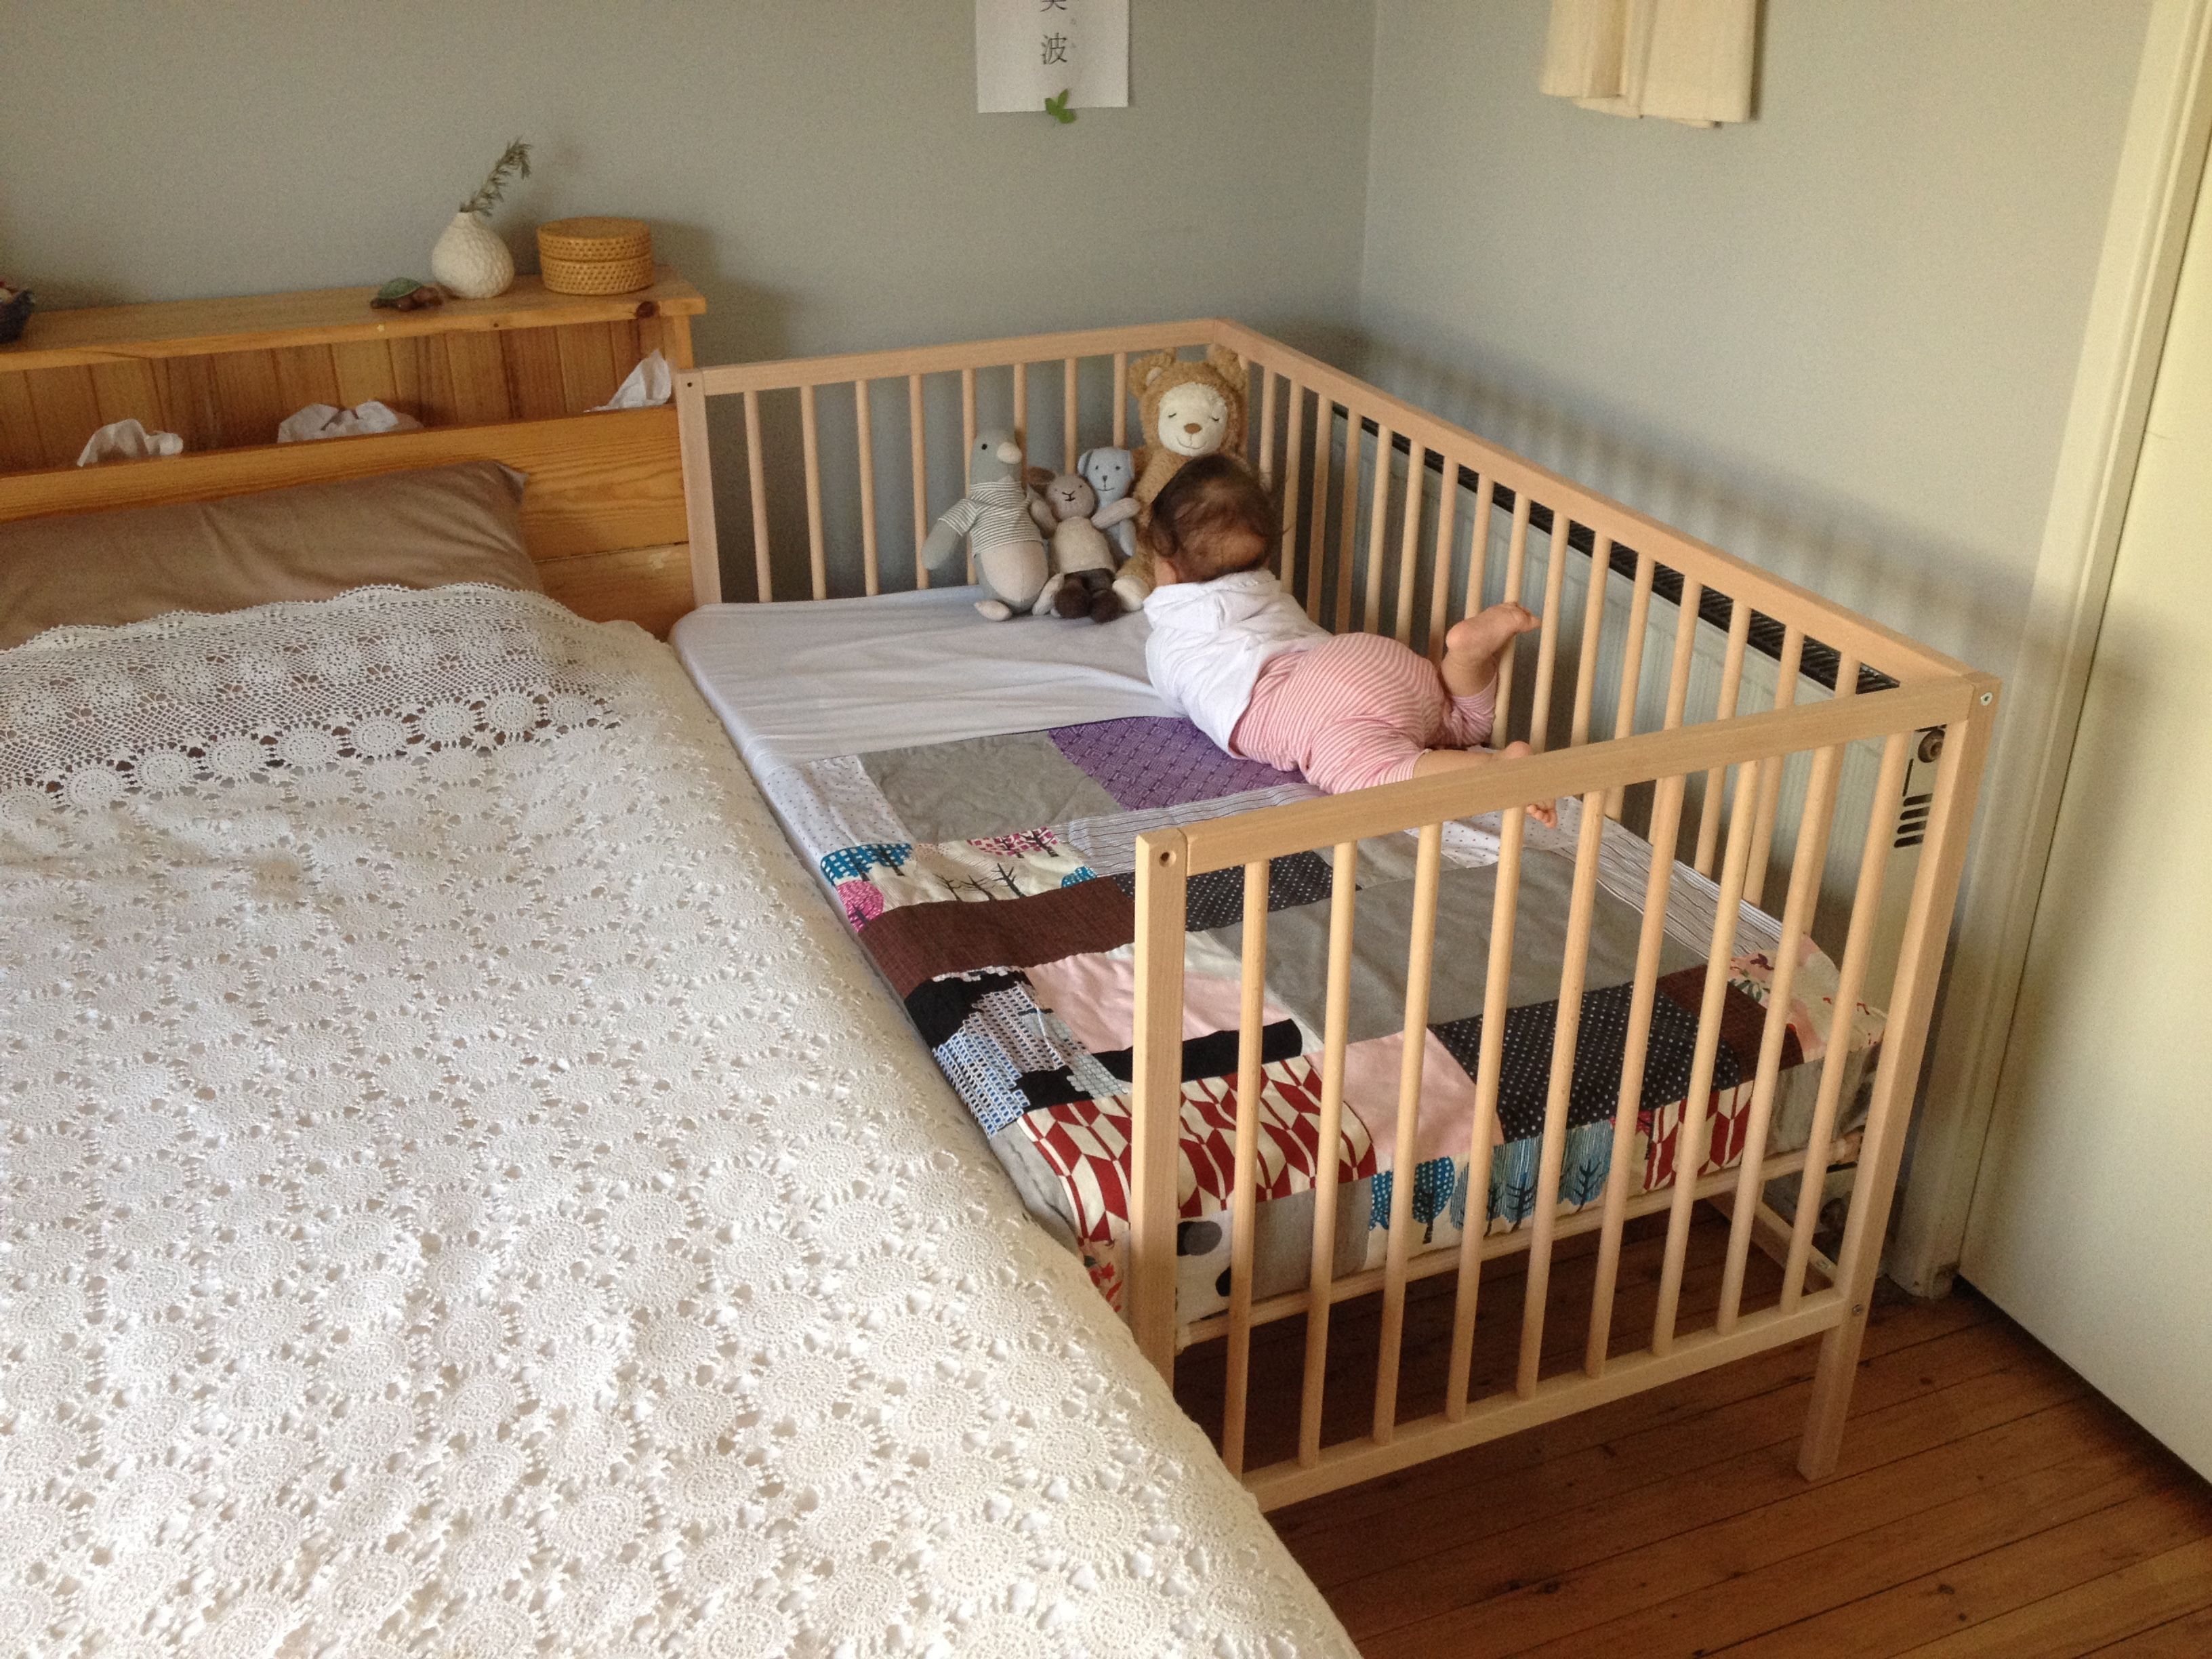 The first years close and secure sleeper review 2015 baby co sleeper cots and cribs